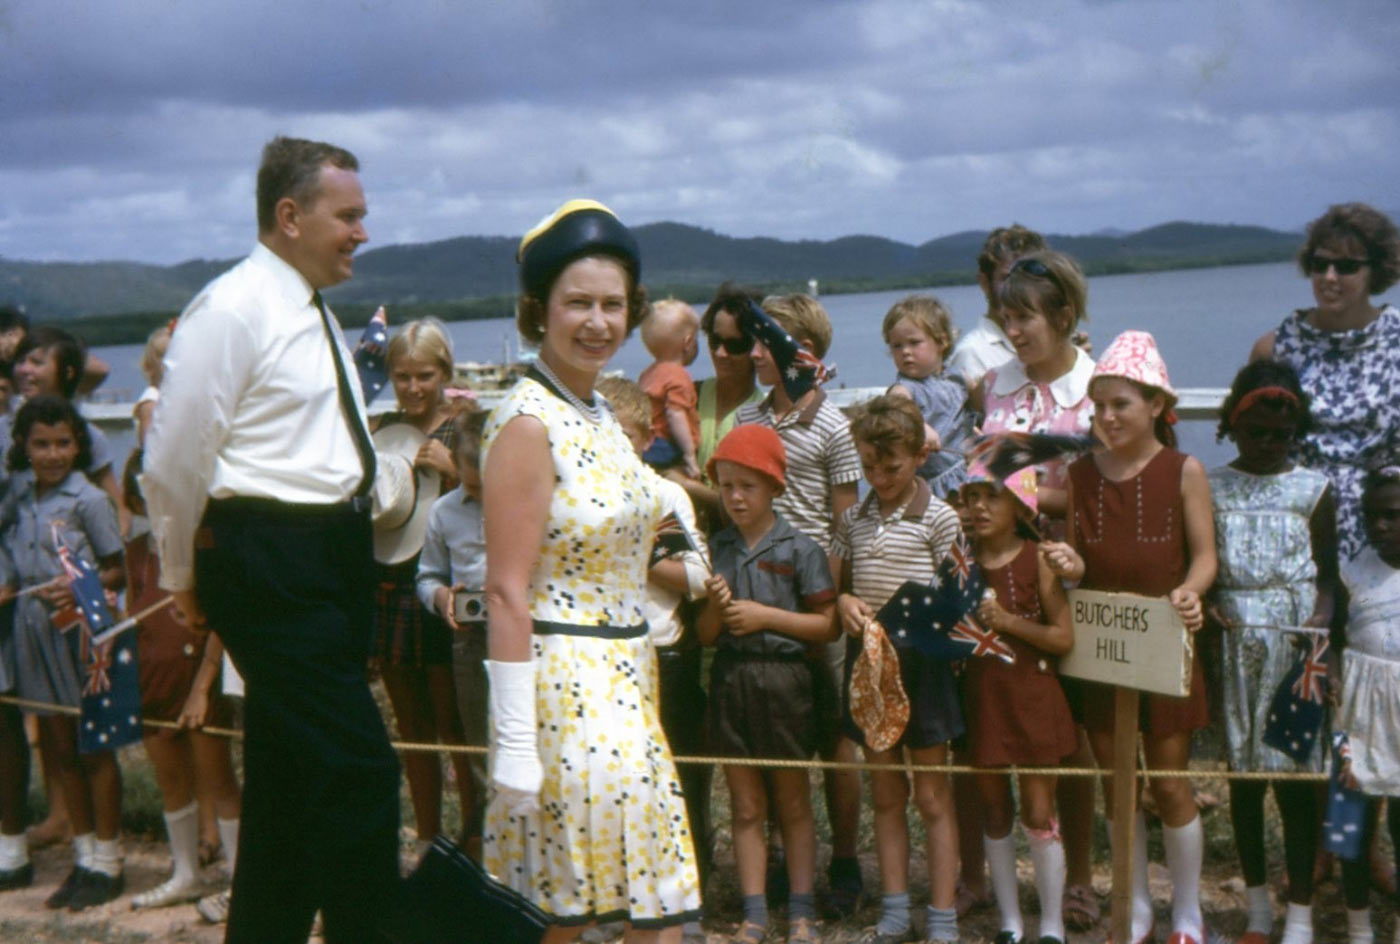 Colour photo of Queen Elizabeth II being greeted by town residents. There is a girl holding a sign that reads 'BUTCHERS HILL'. - click to view larger image